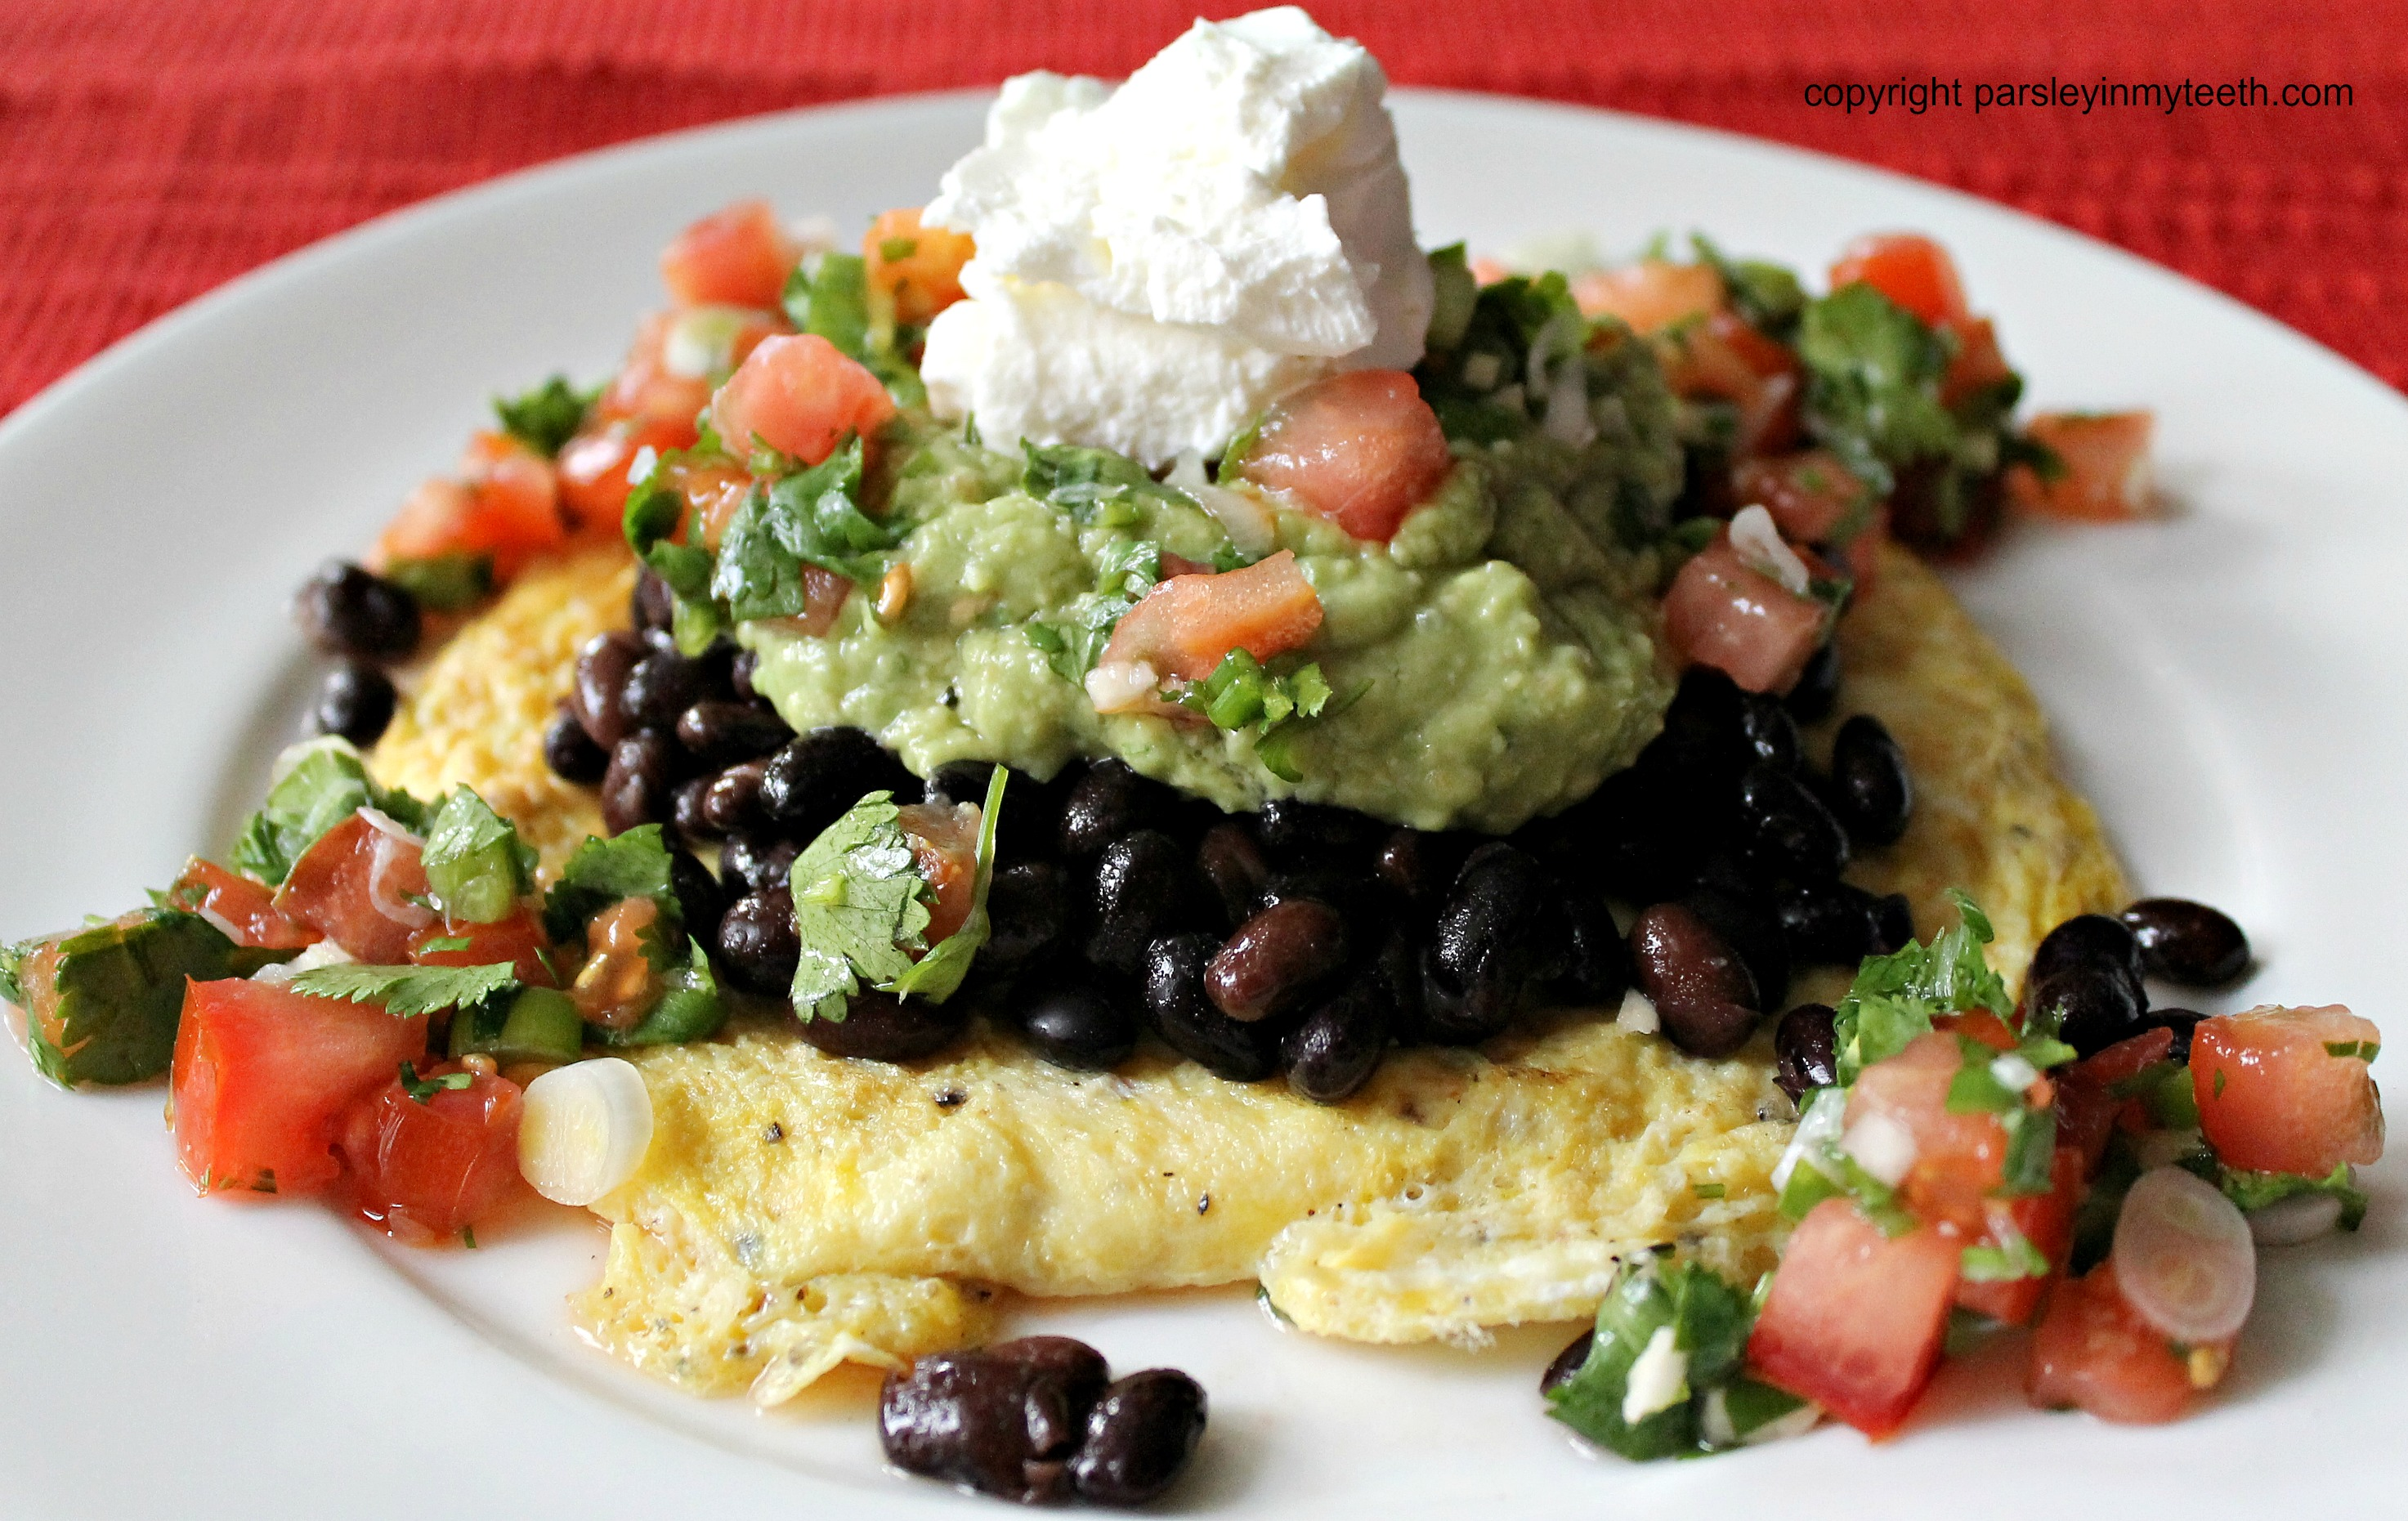 Mexican Breakfast with Eggs Black Beans Guacamole Pico de Gallo and ...